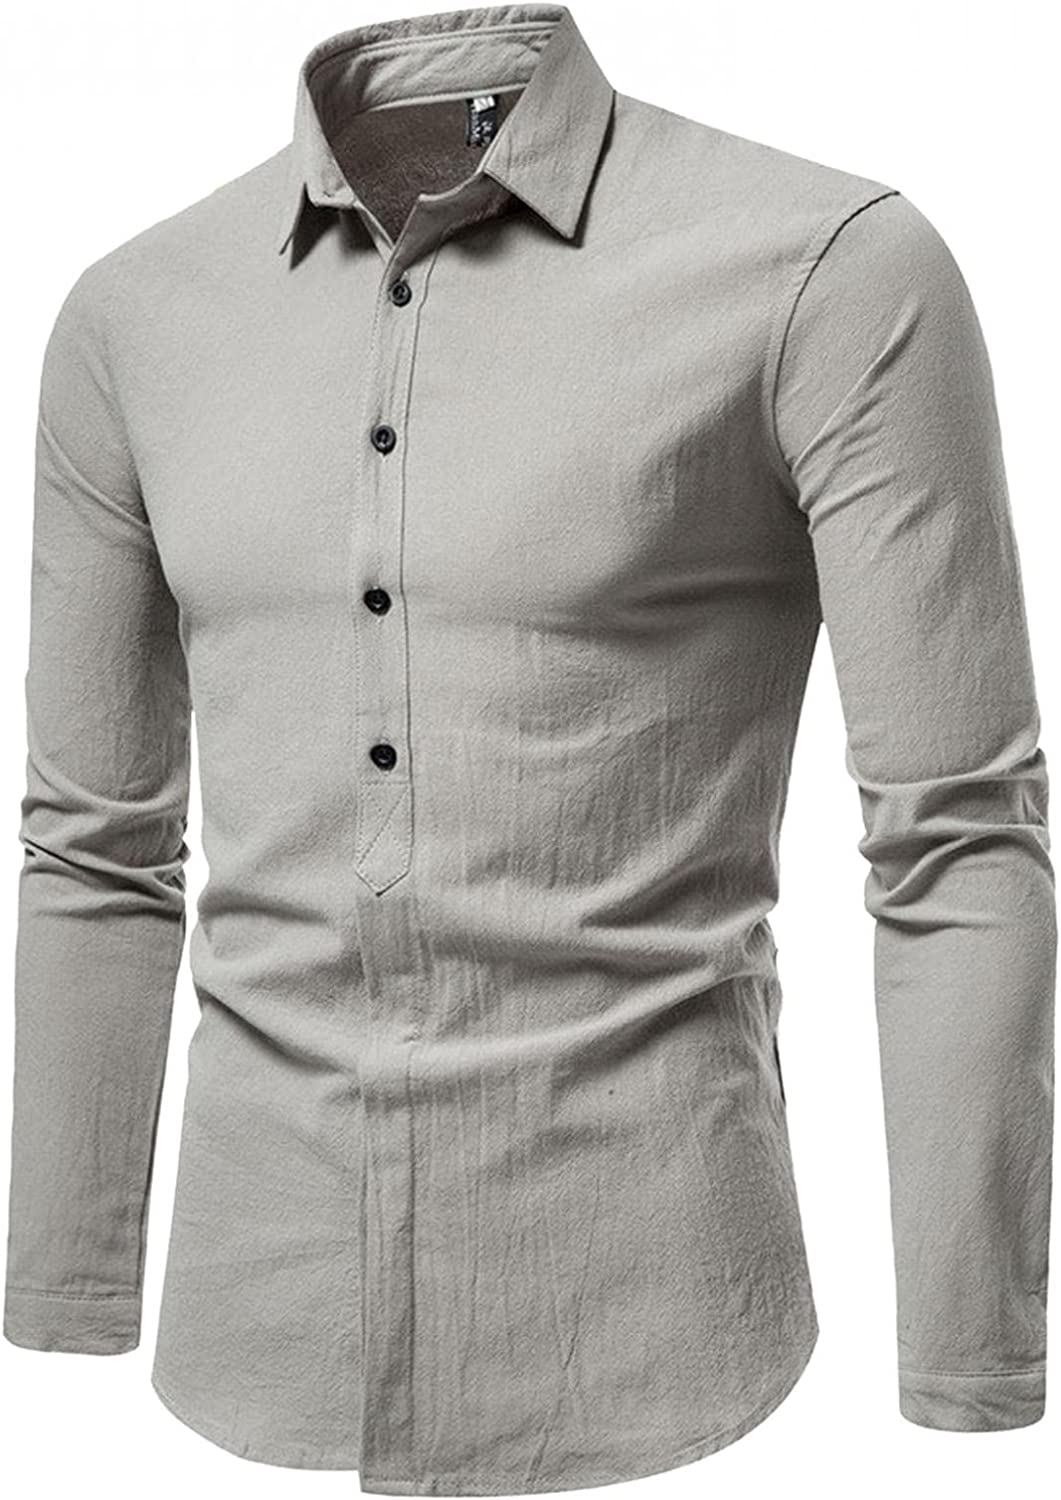 KEEYO Mens Casual Long Sleeve Button Down Dress Shirts Regular Fit Wrinkle-Free Work Business Cotton Shirts Tops S-5XL